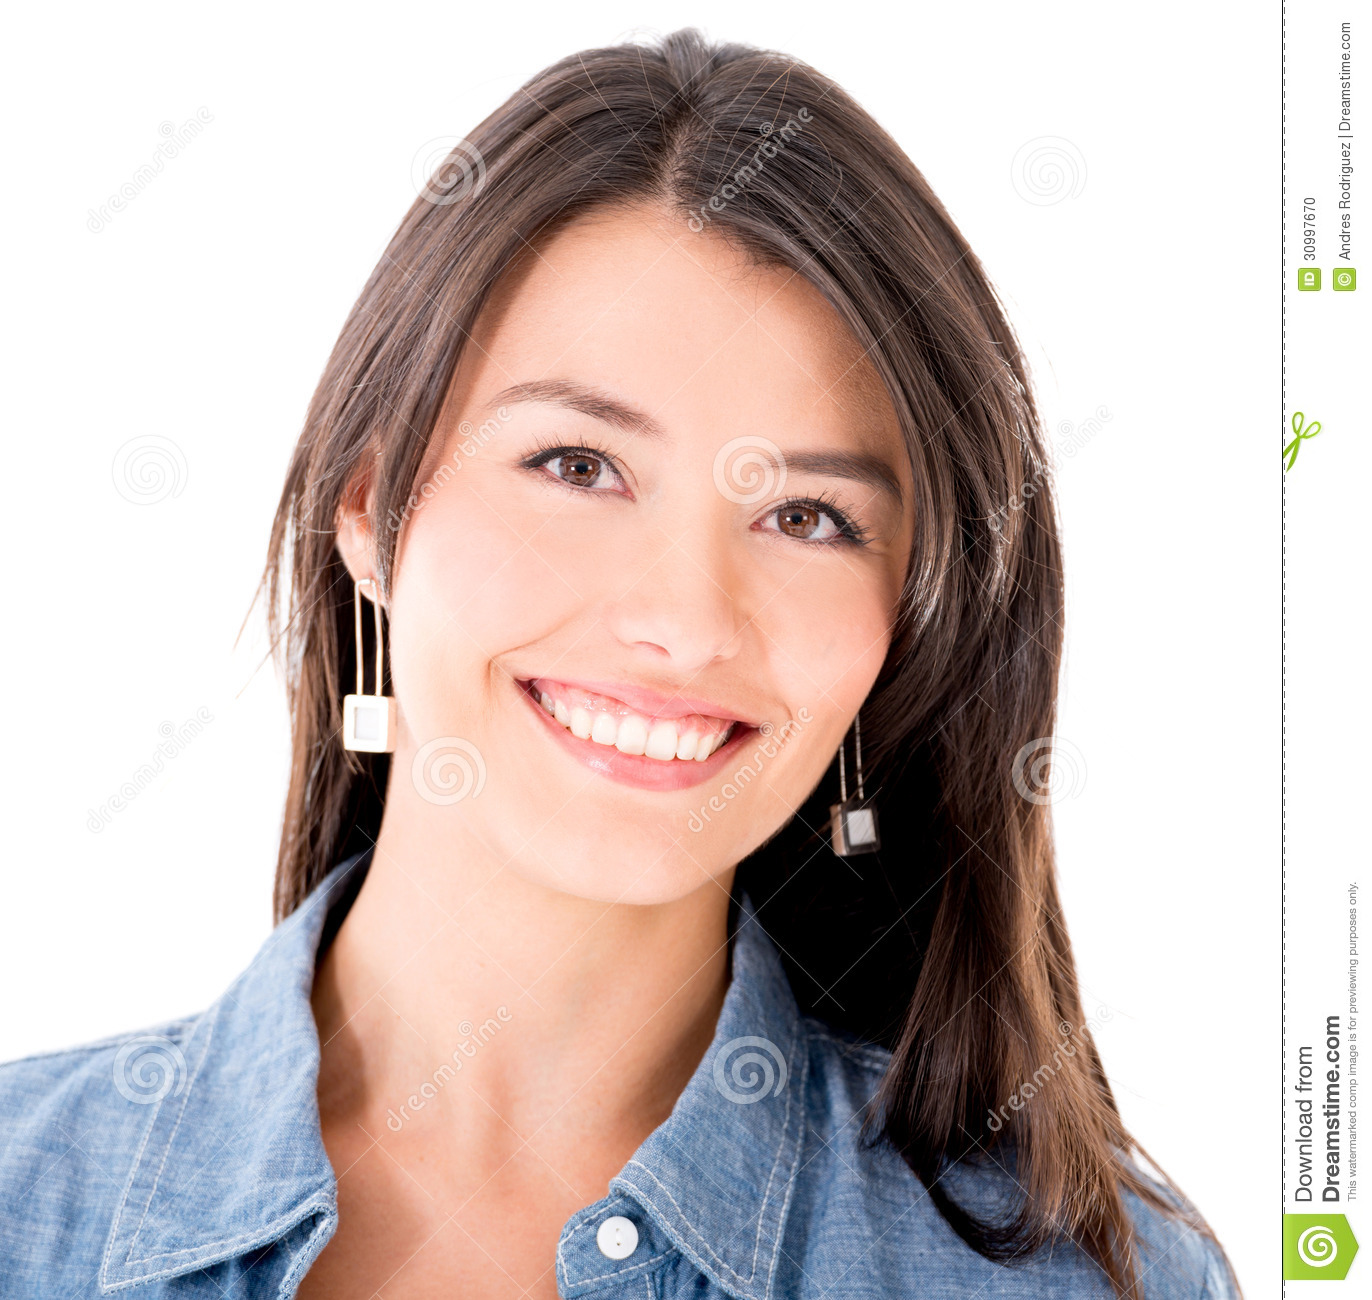 happy-woman-smiling-isolated-over-white-